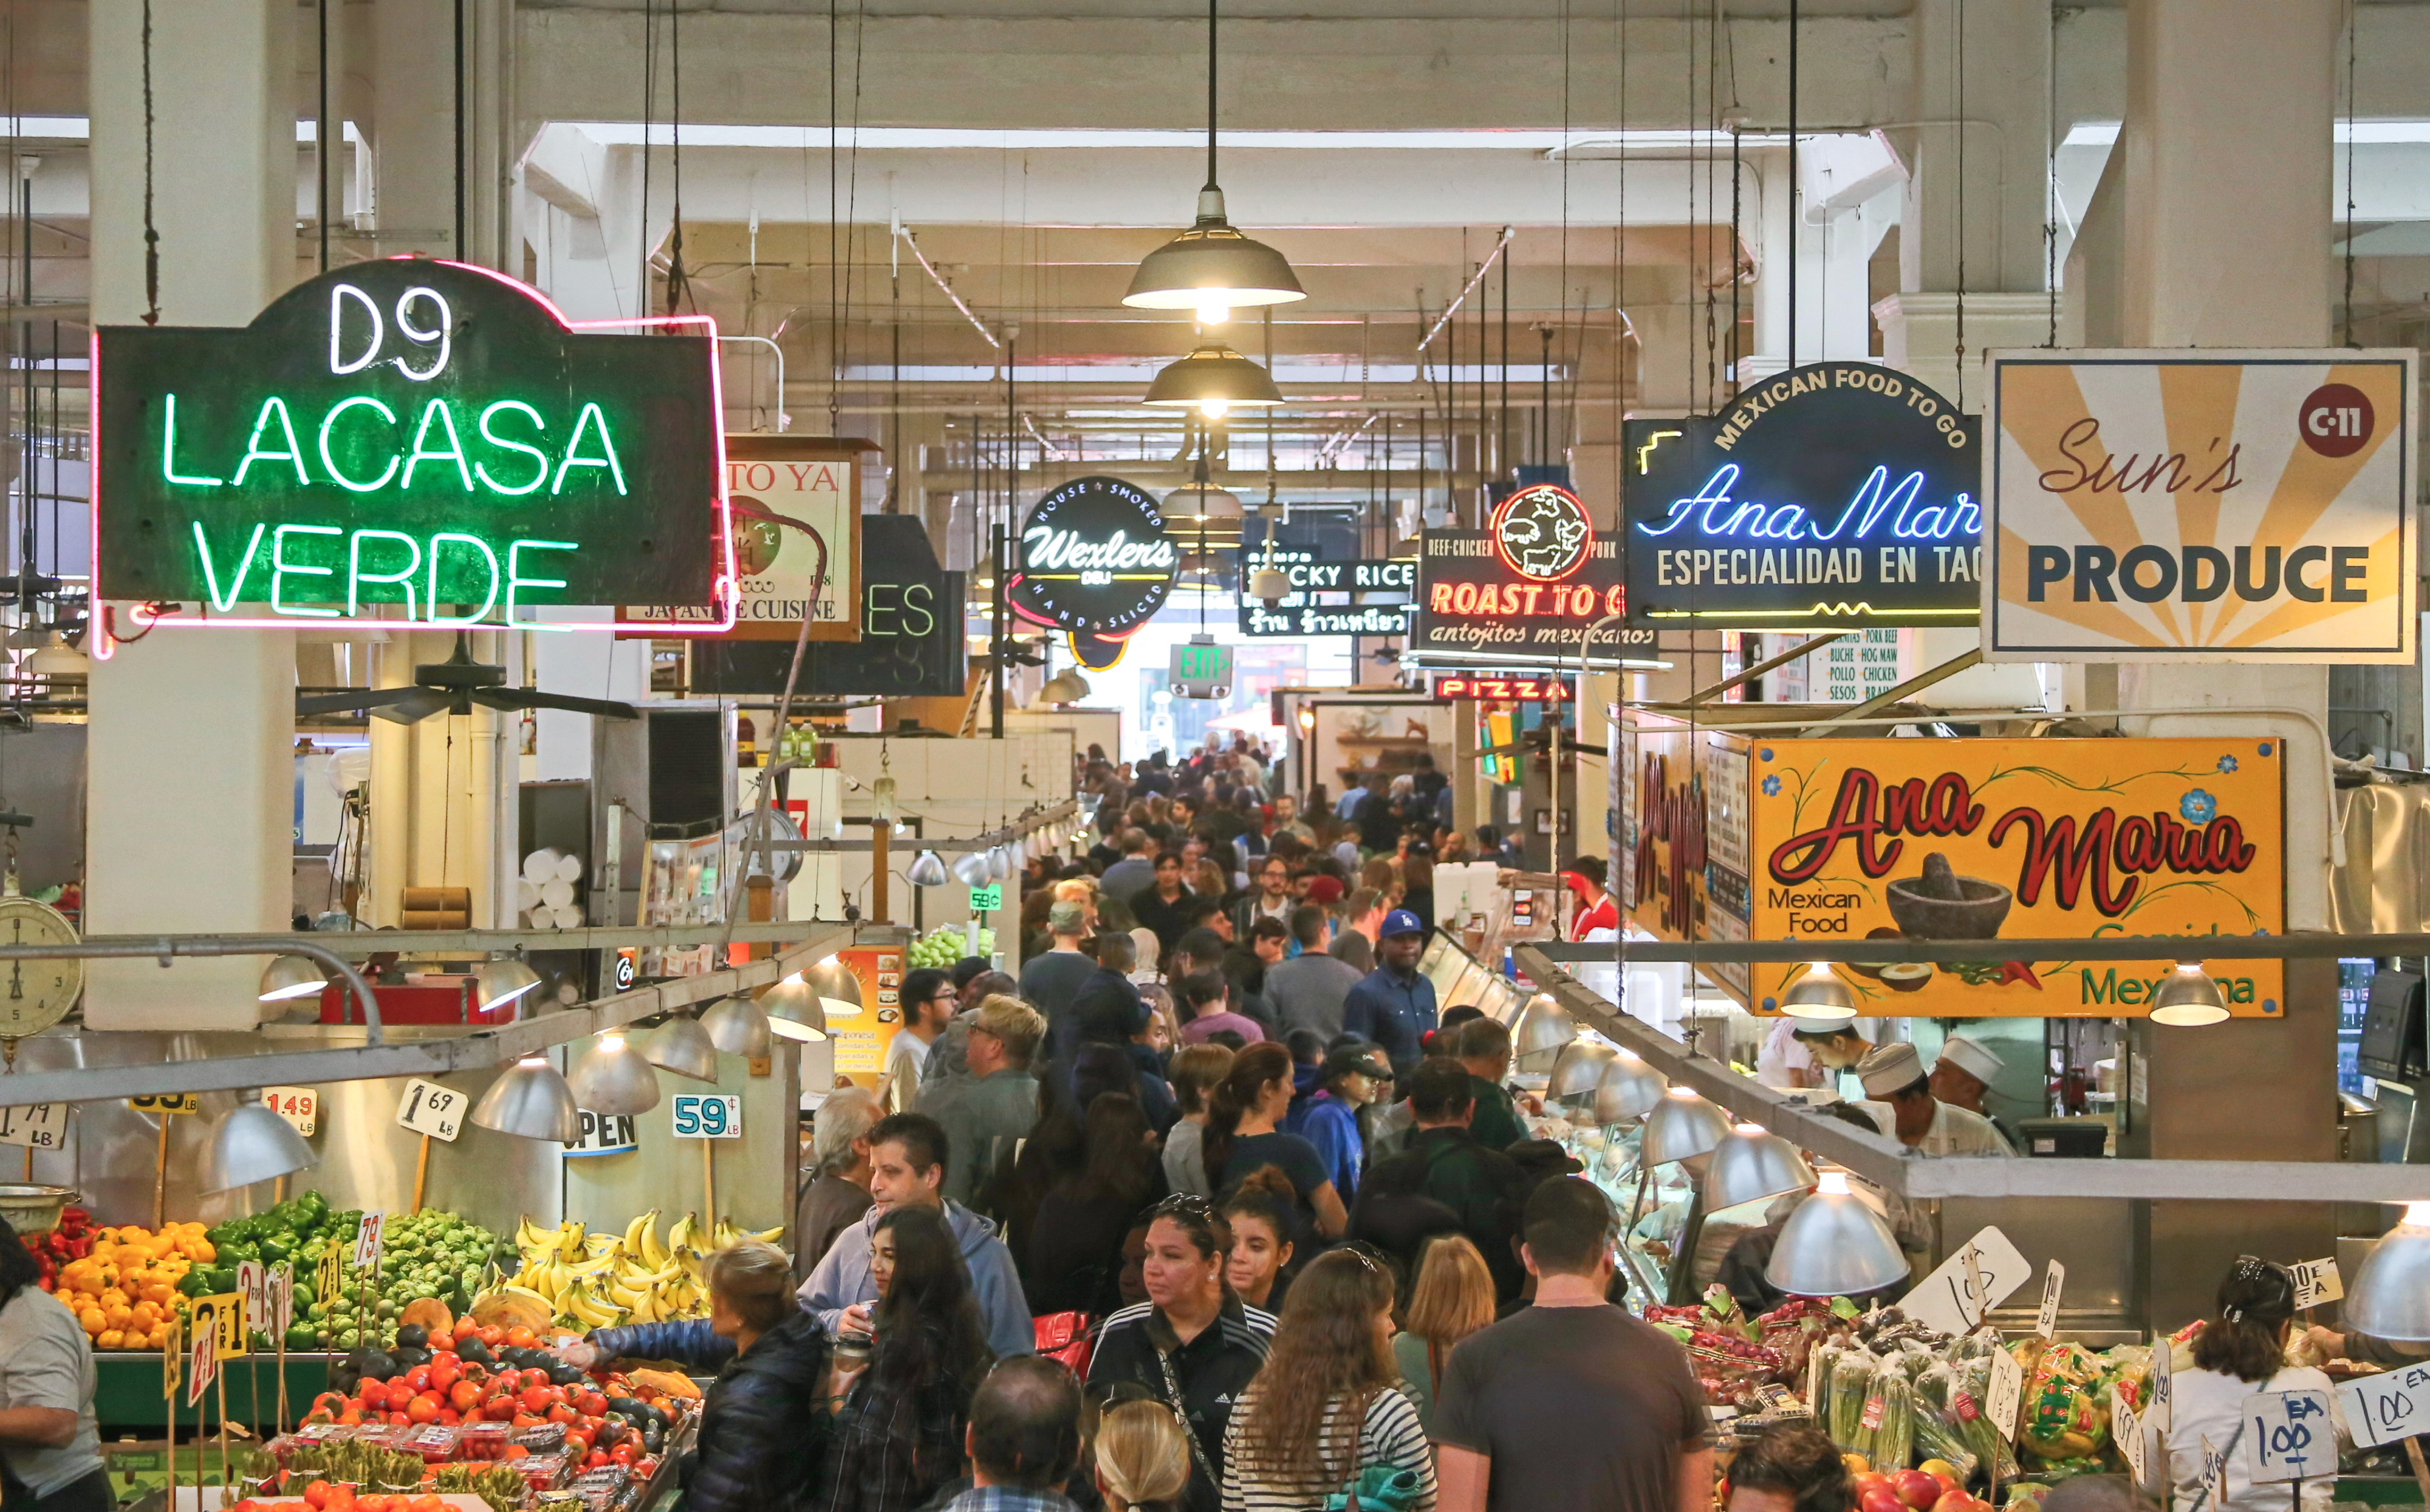 Los Angeles, United States - November 28, 2015: A view looking down into the Grand Central Market in historic downtown Los Angeles. Here you can find a large variety of food stands and stalls selling groceries and other food related items. Located in the historic Homer Laughlin building, it features a large open space for shopping and browsing and various neon signs advertising foods traditionally found in California. People can be seen shopping and sitting at counters eating meals.